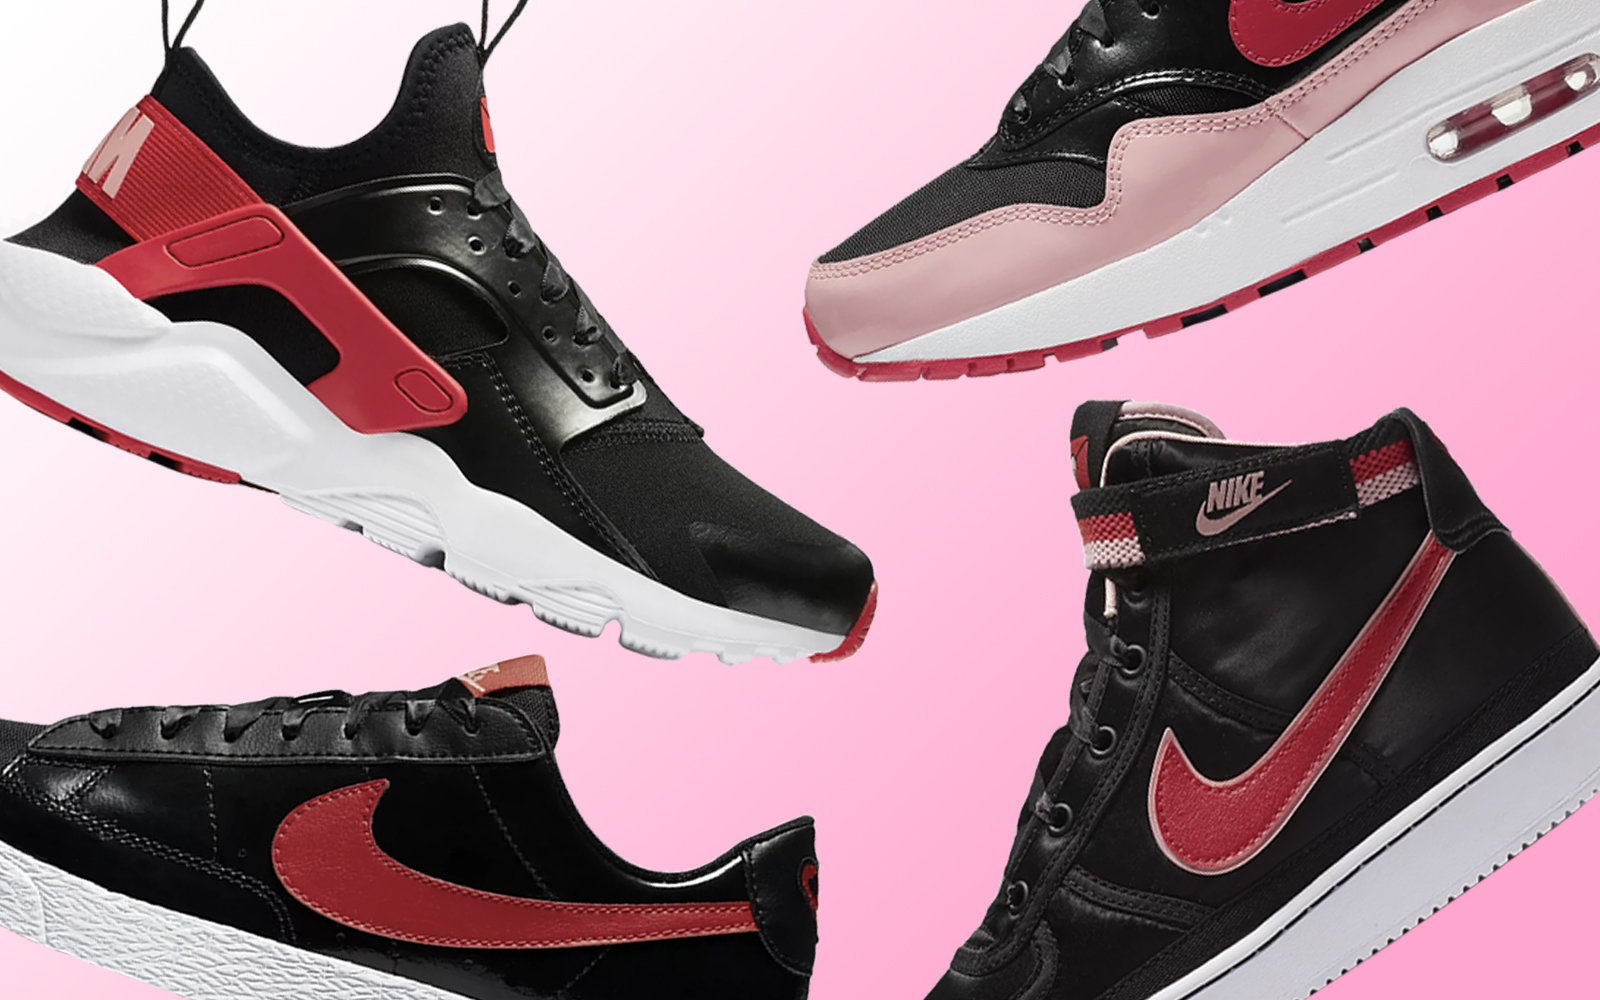 nike-valentines-day-sneaker-collection-NIKEVDAY0218.jpg